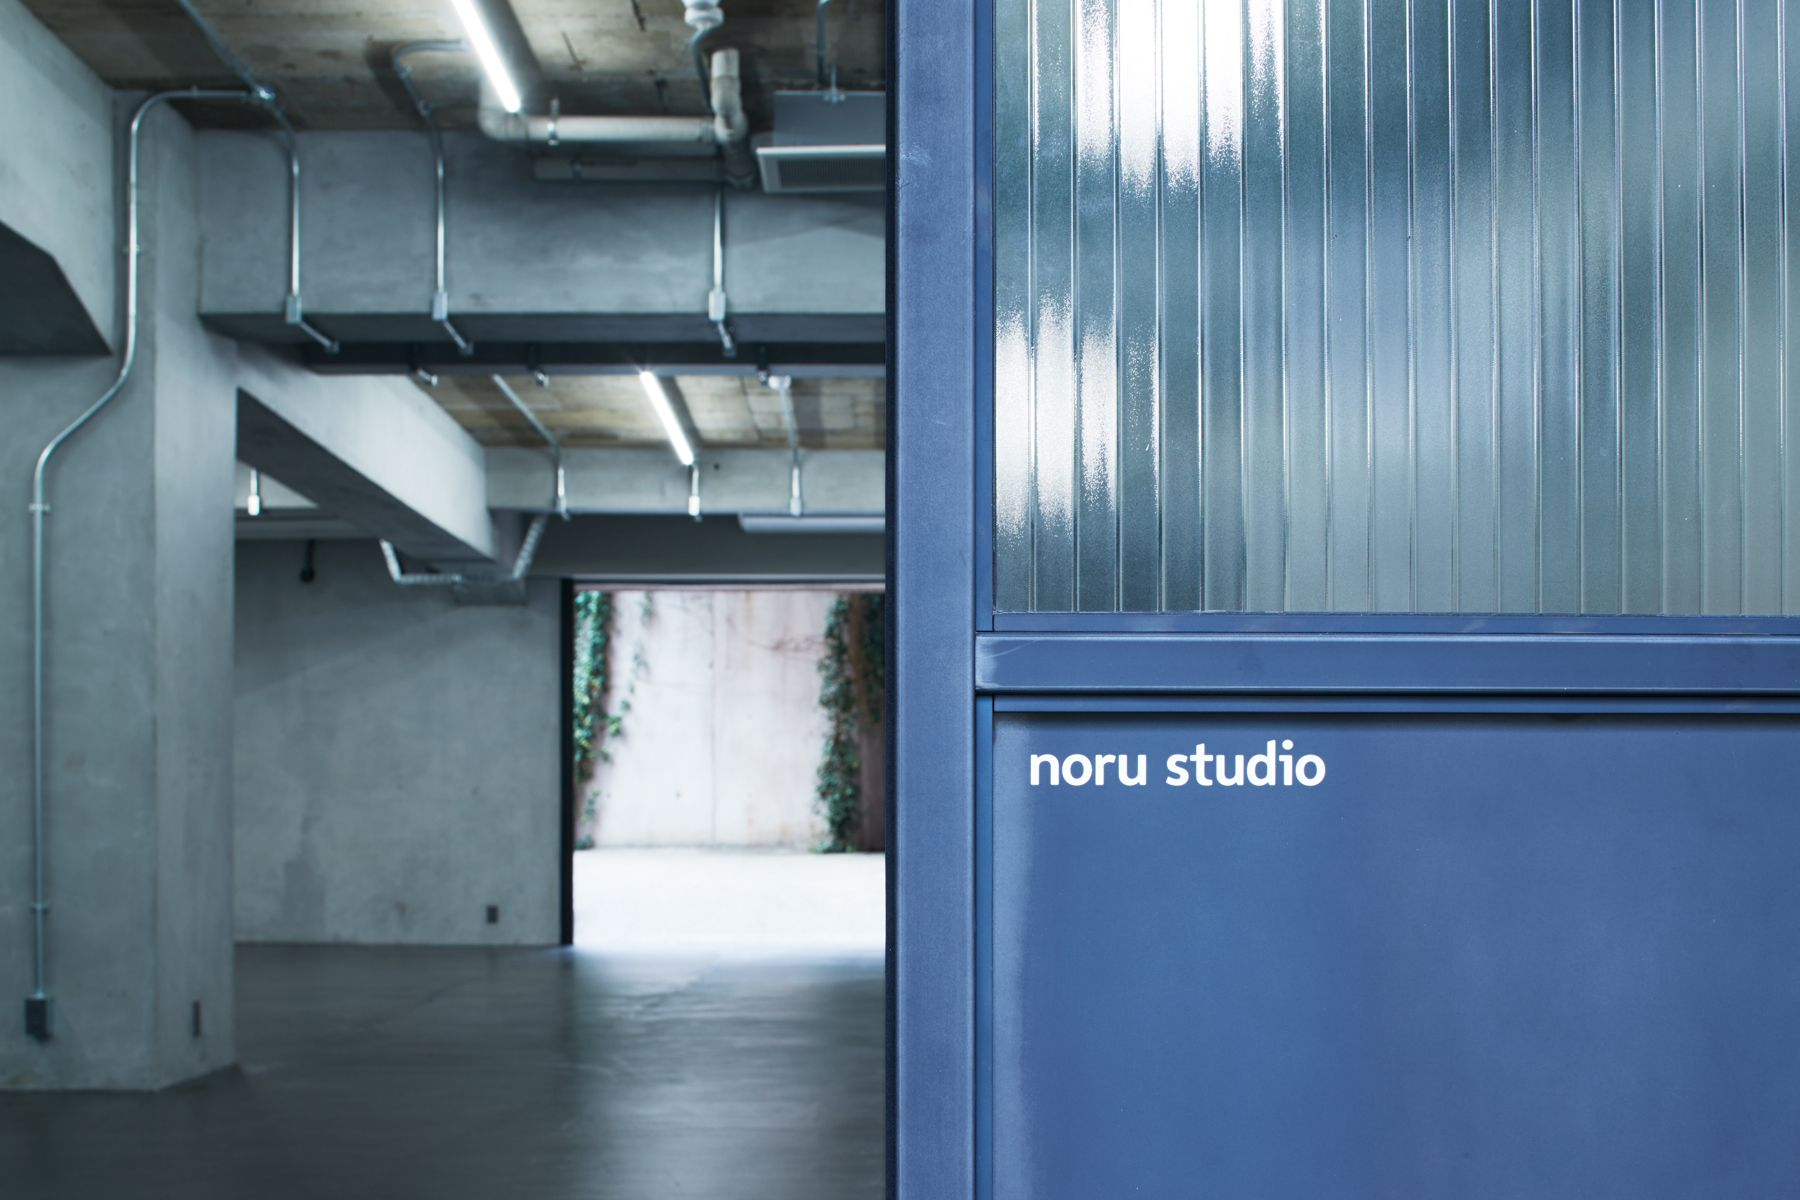 noru studio (ノル スタジオ)produced by noru journal